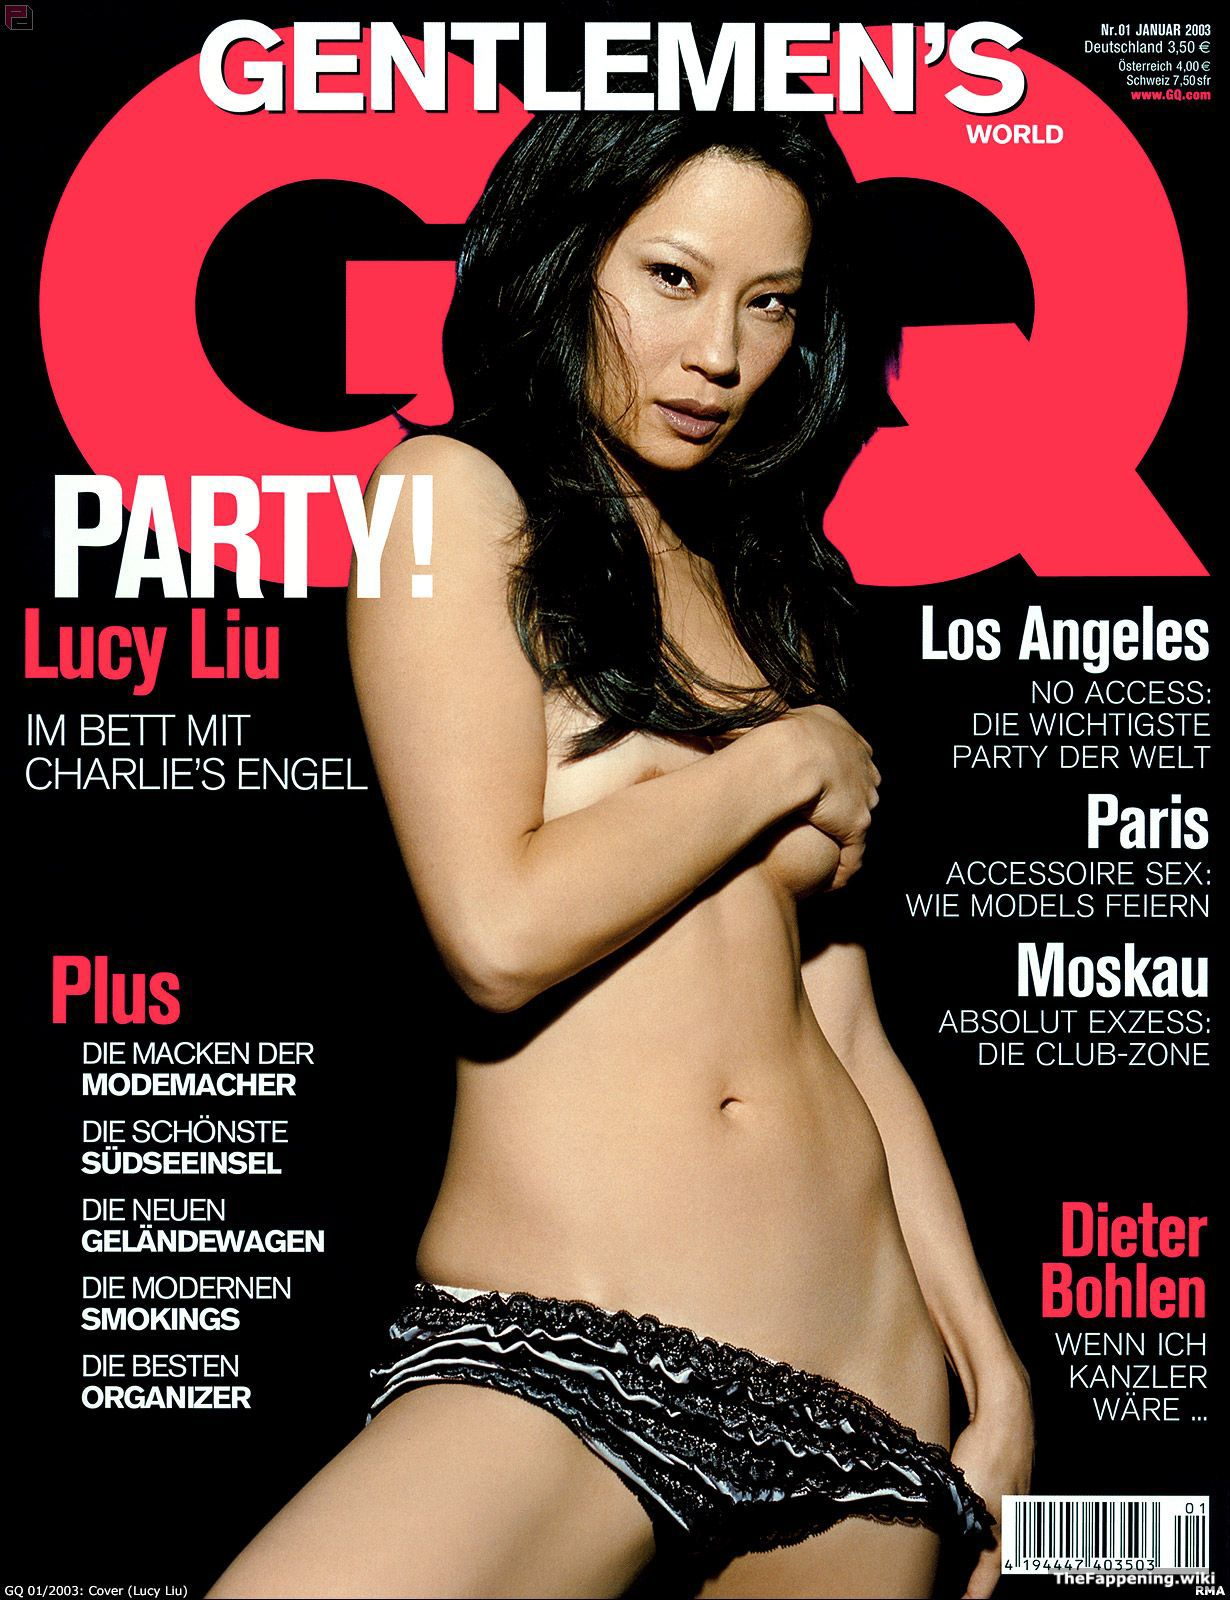 Lucy Liu Nude Naked Porn - ... the whole world to see what she has to offer. Her extremely pretty  boobs are on full display in a very sheer, see-through piece of lingerie  that she ...